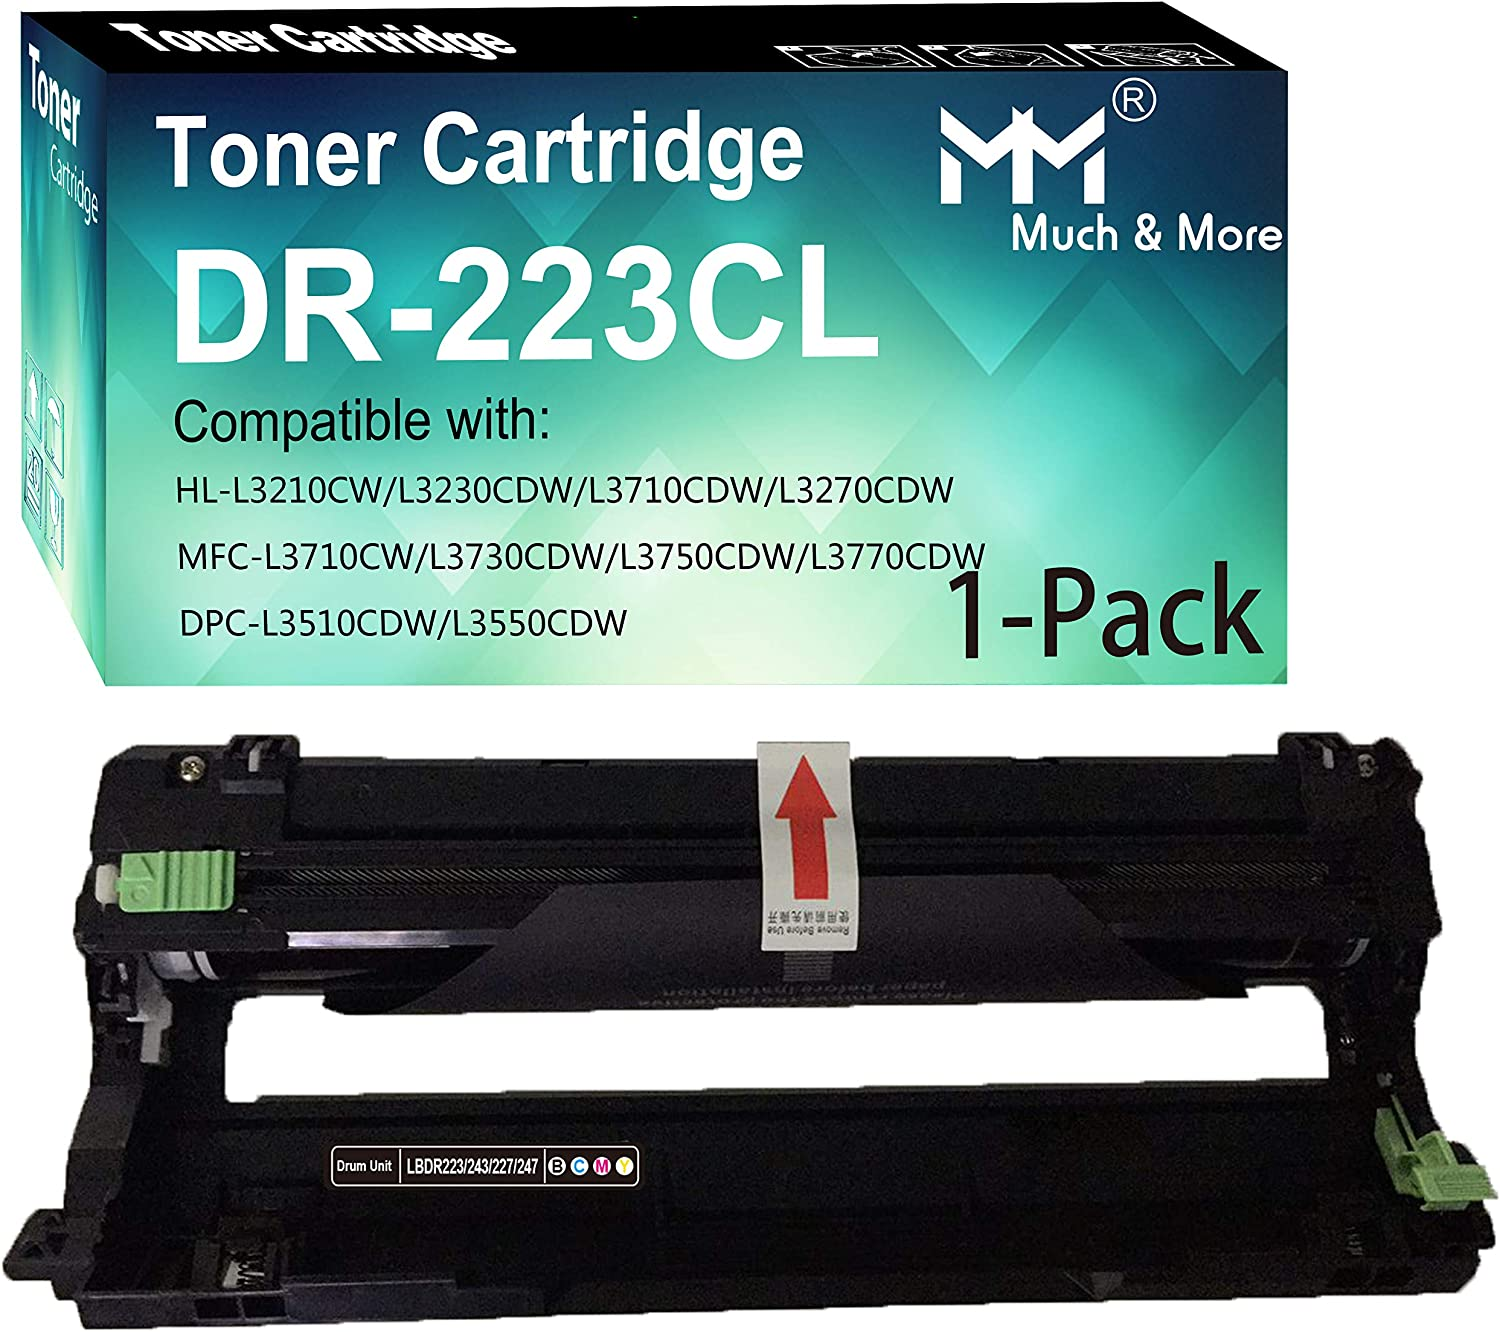 MM MUCH & MORE Compatible Drum Unit Replacement for Brother DR223CL DR223 223CL Used with HL-L3210CW L3230CDW L3270CDW L3290CDW MFC-L3710CW L3750CDW L3770CDW Printers (1-Pack)